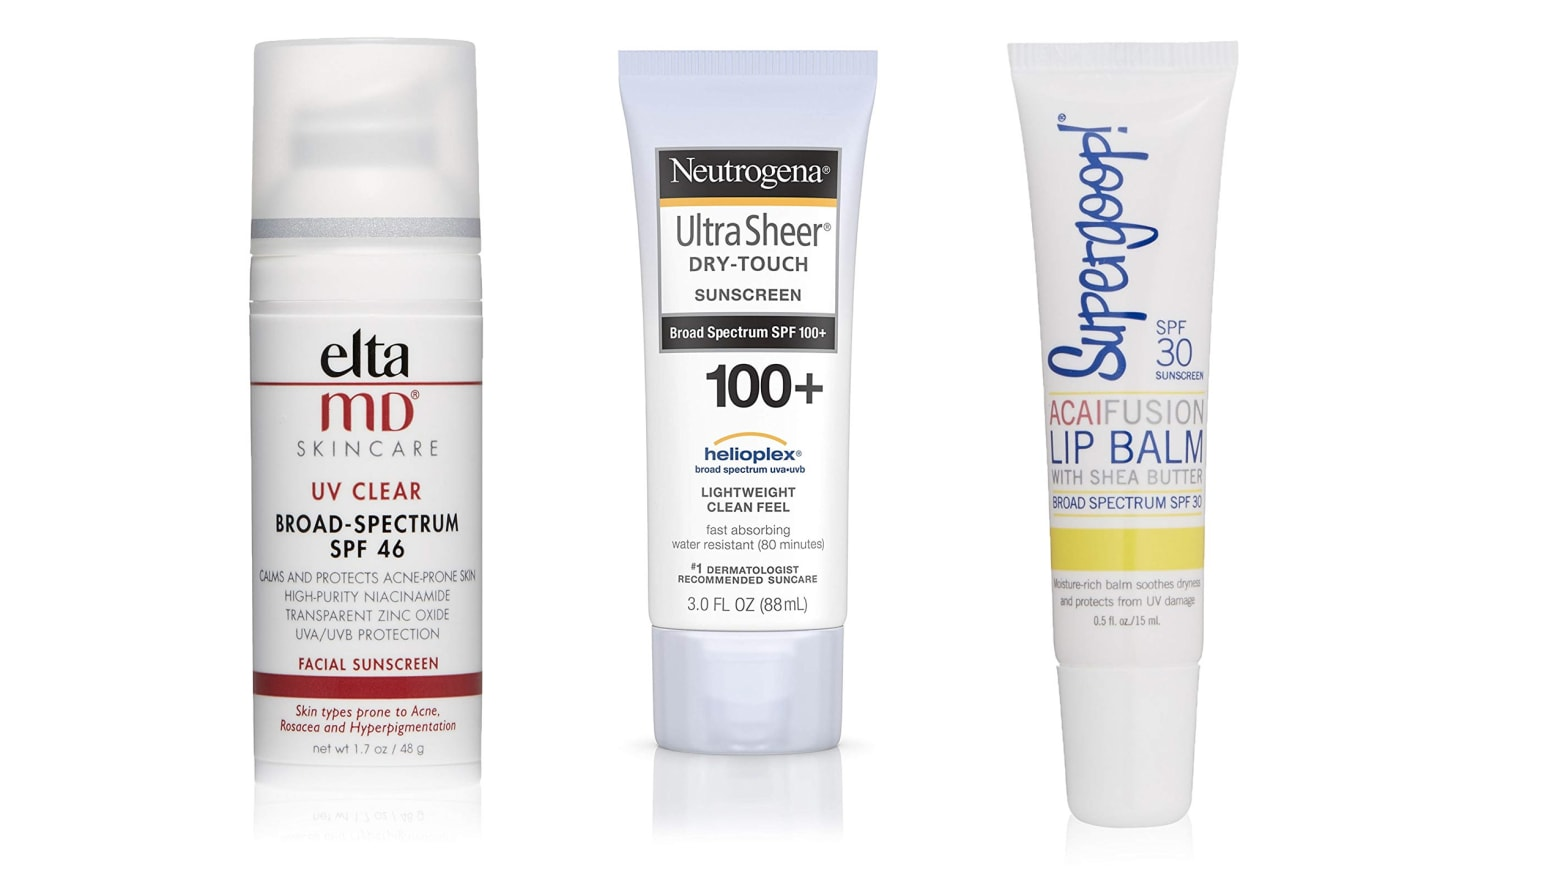 The Best Sunscreen For Your Face, Body, and Lips